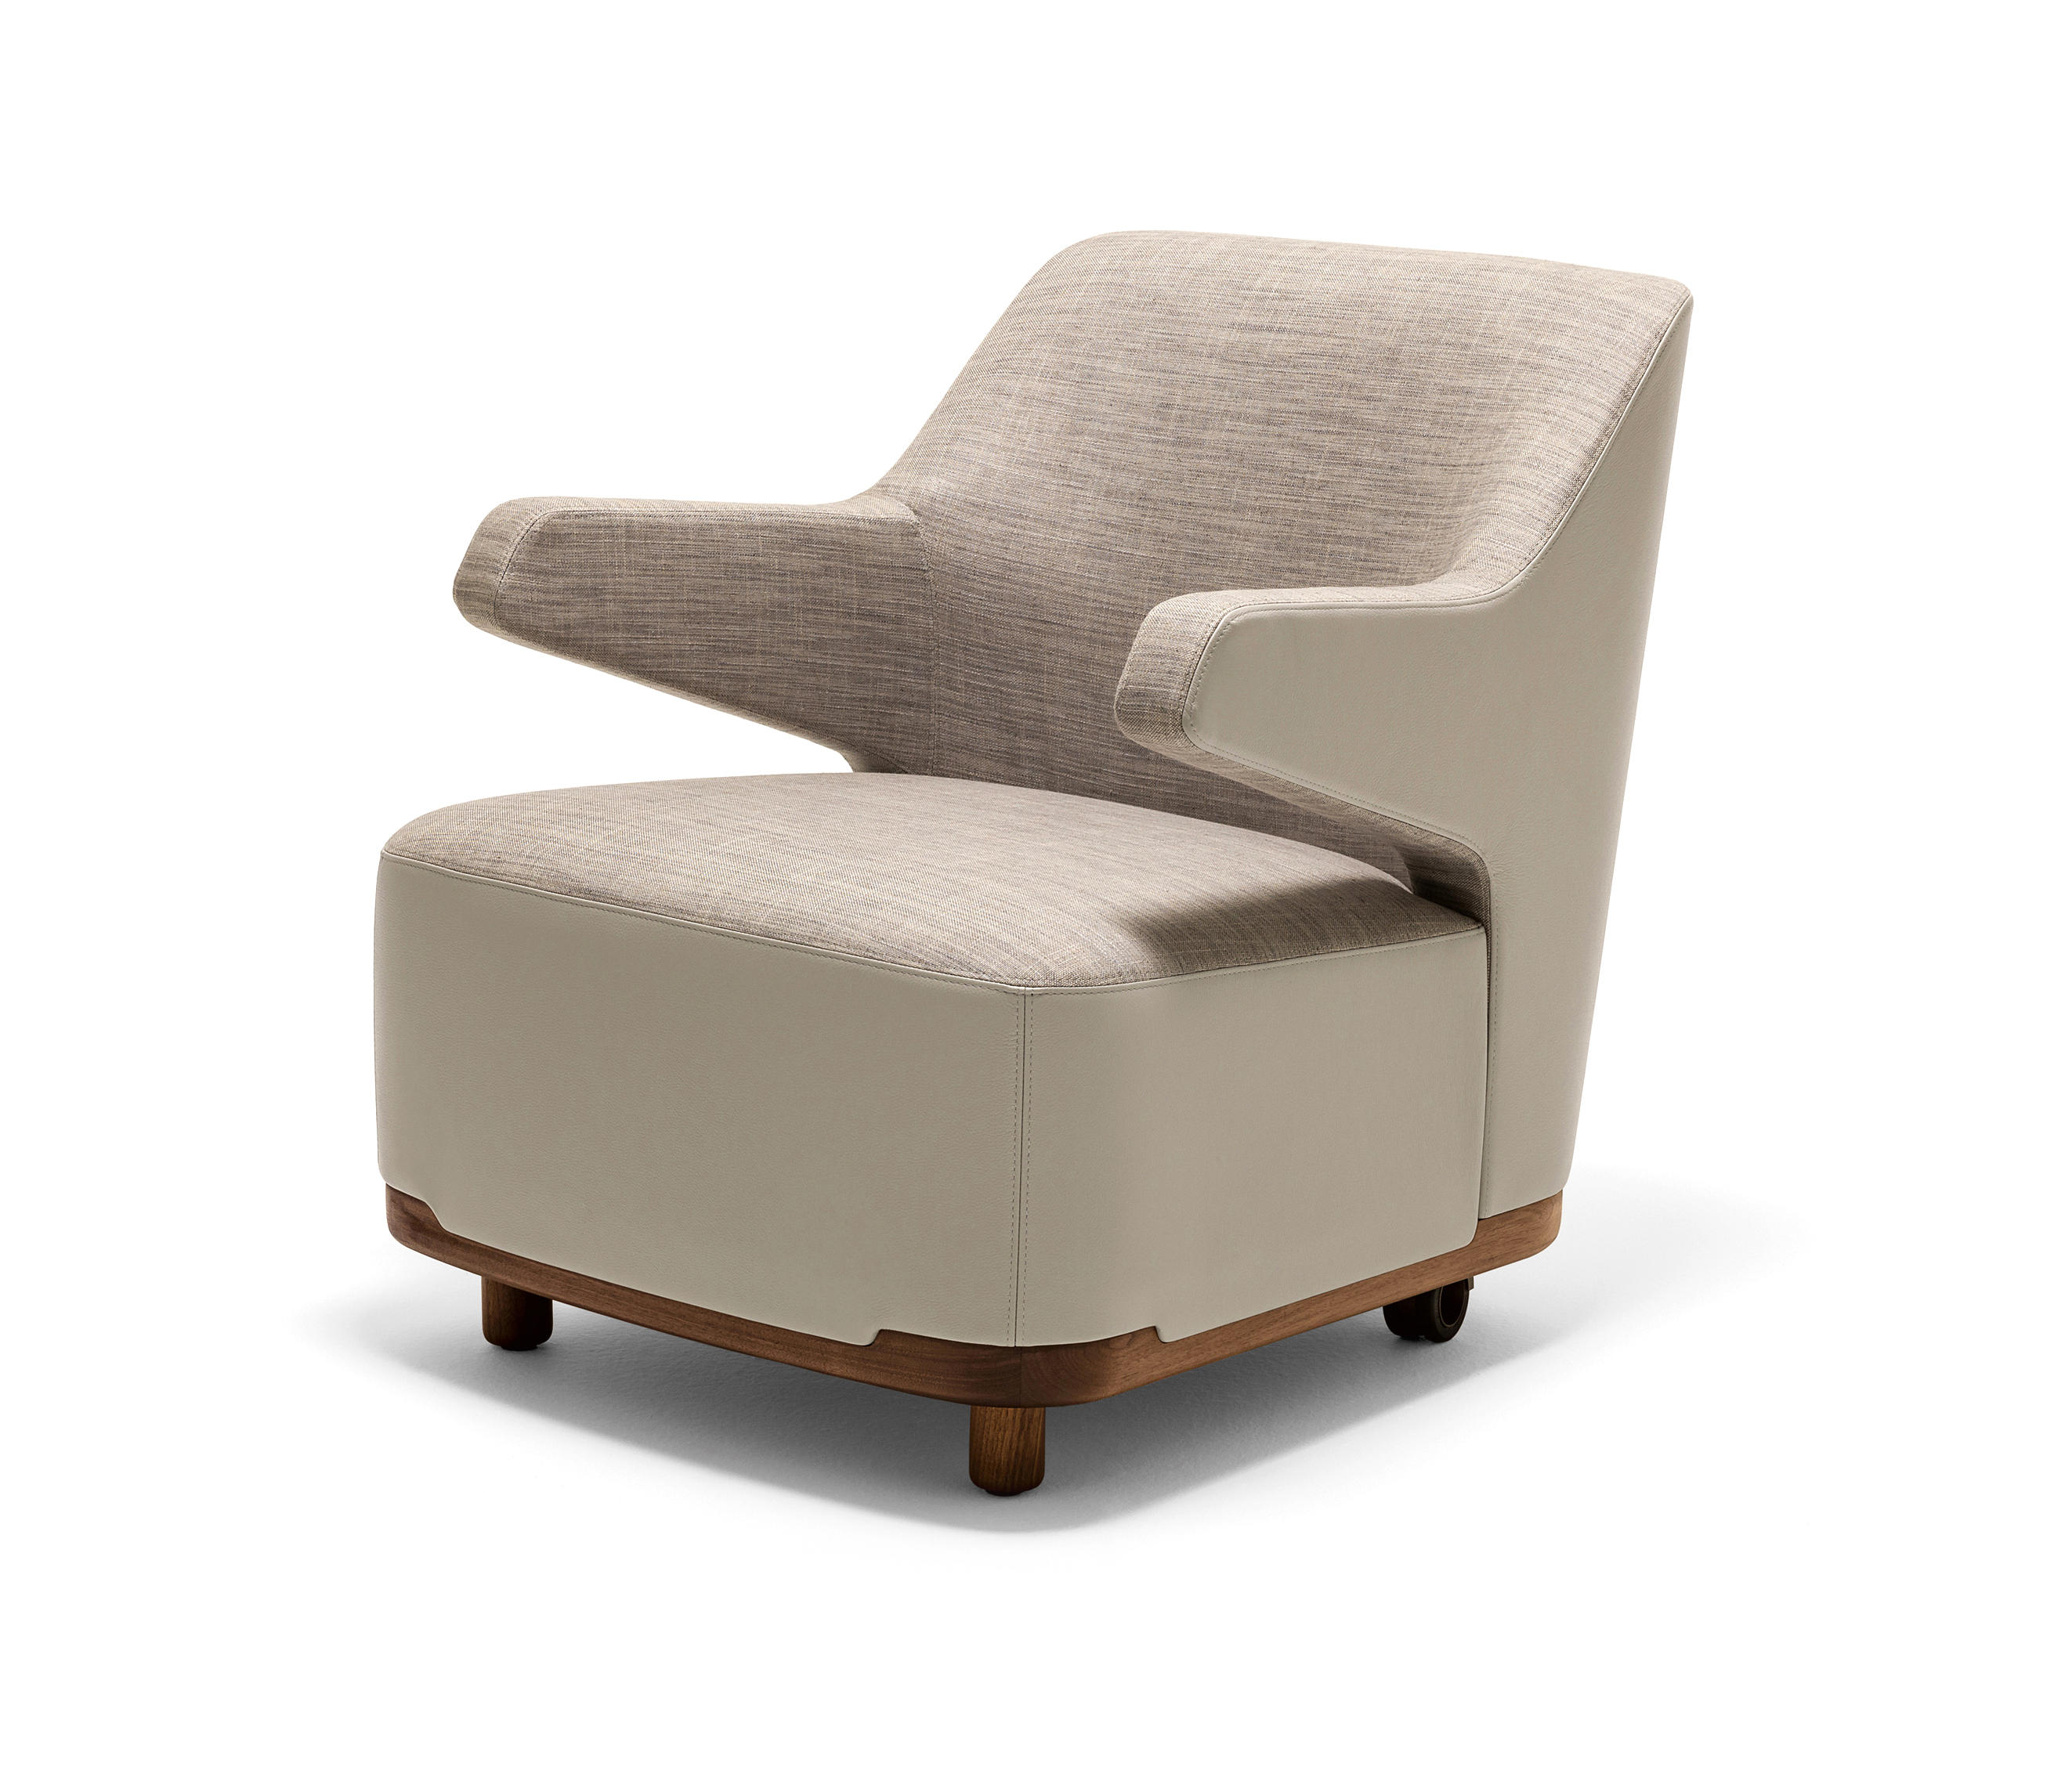 COZY ARMCHAIR Lounge chairs from Gior ti